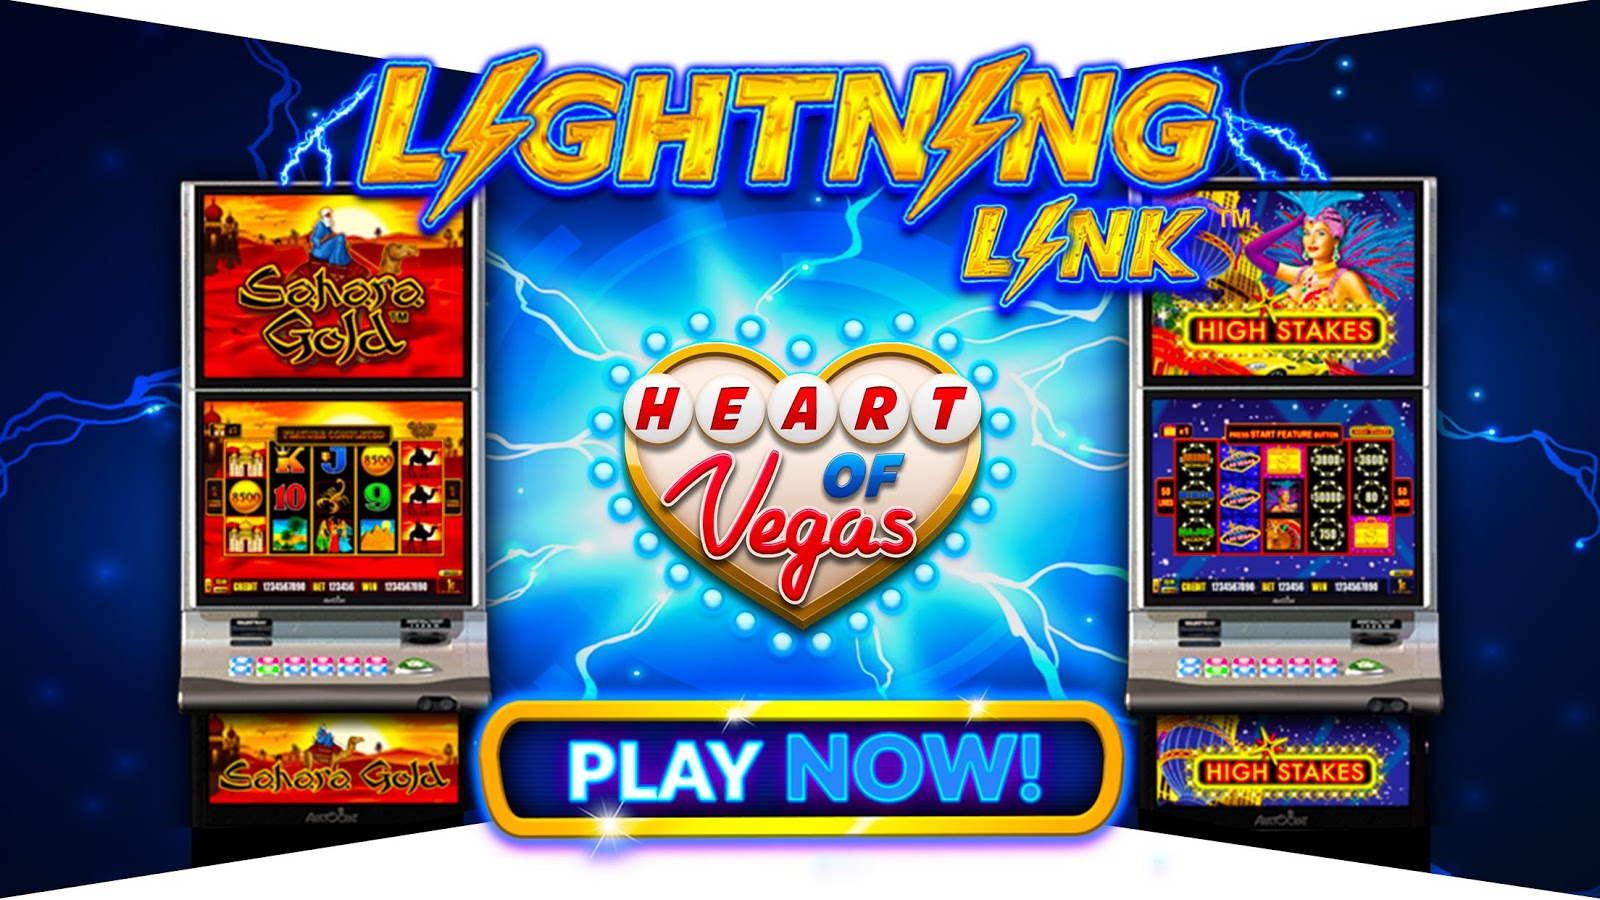 heart of vegas slots free casino 777 android apps on. Black Bedroom Furniture Sets. Home Design Ideas